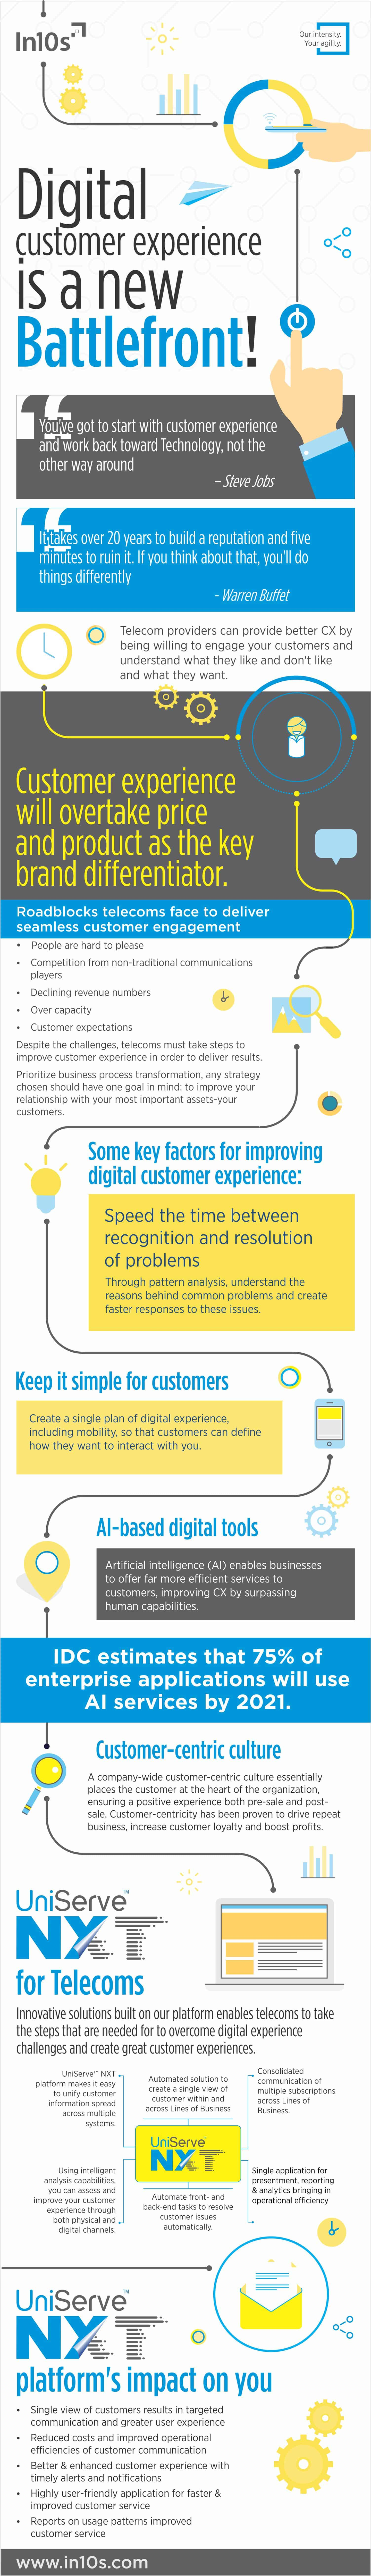 Digital Customer Experience is a new battlefront